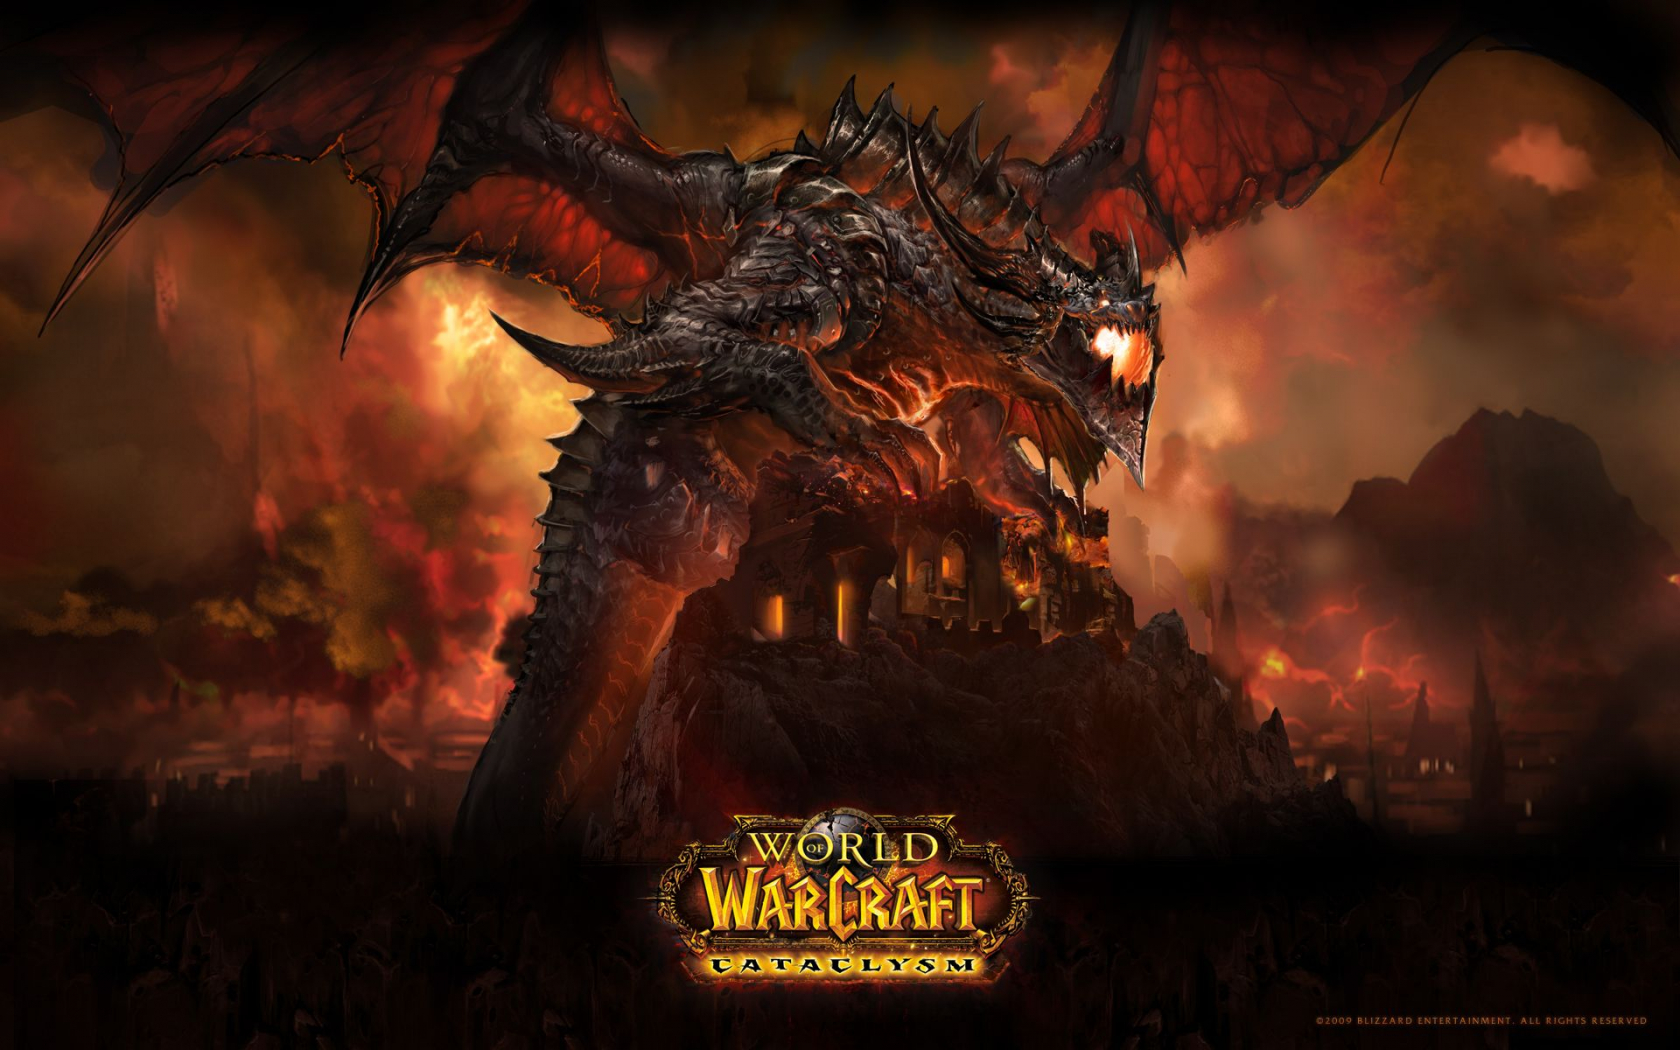 Free Download World Of Warcraft 1080p Hd Wallpaper 1920x1200 For Your Desktop Mobile Tablet Explore 45 Hd Wow Wallpapers Blizzard Wallpaper Wow Wallpapers 1366x768 Wow Hd Wallpapers 1600x1200